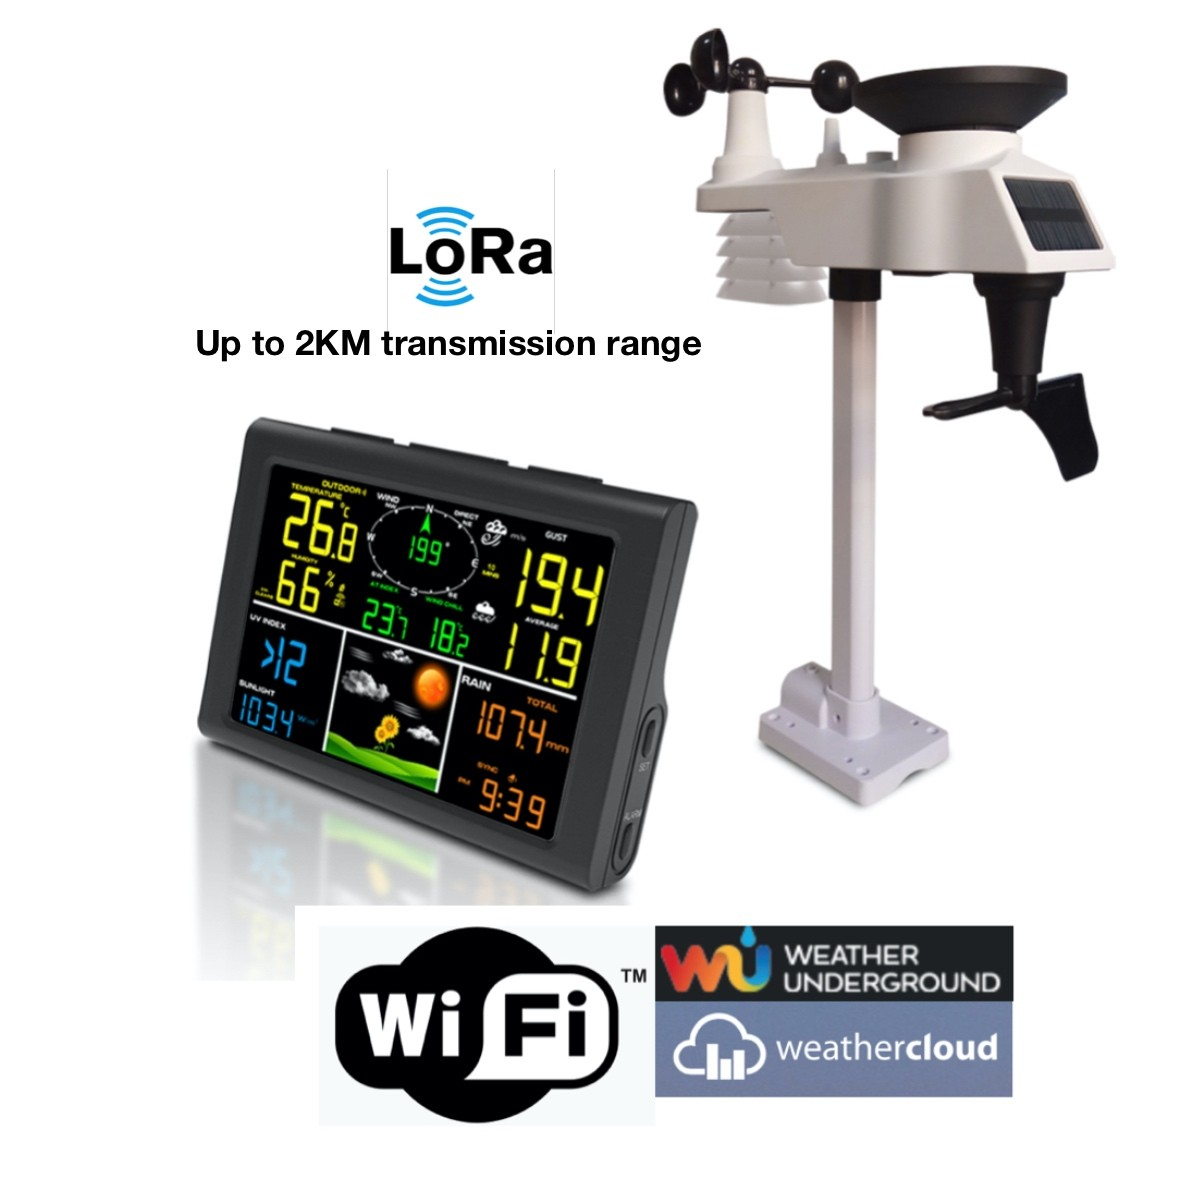 FT-0832L0-Wifi Lora and Wifi Professional Weather Station